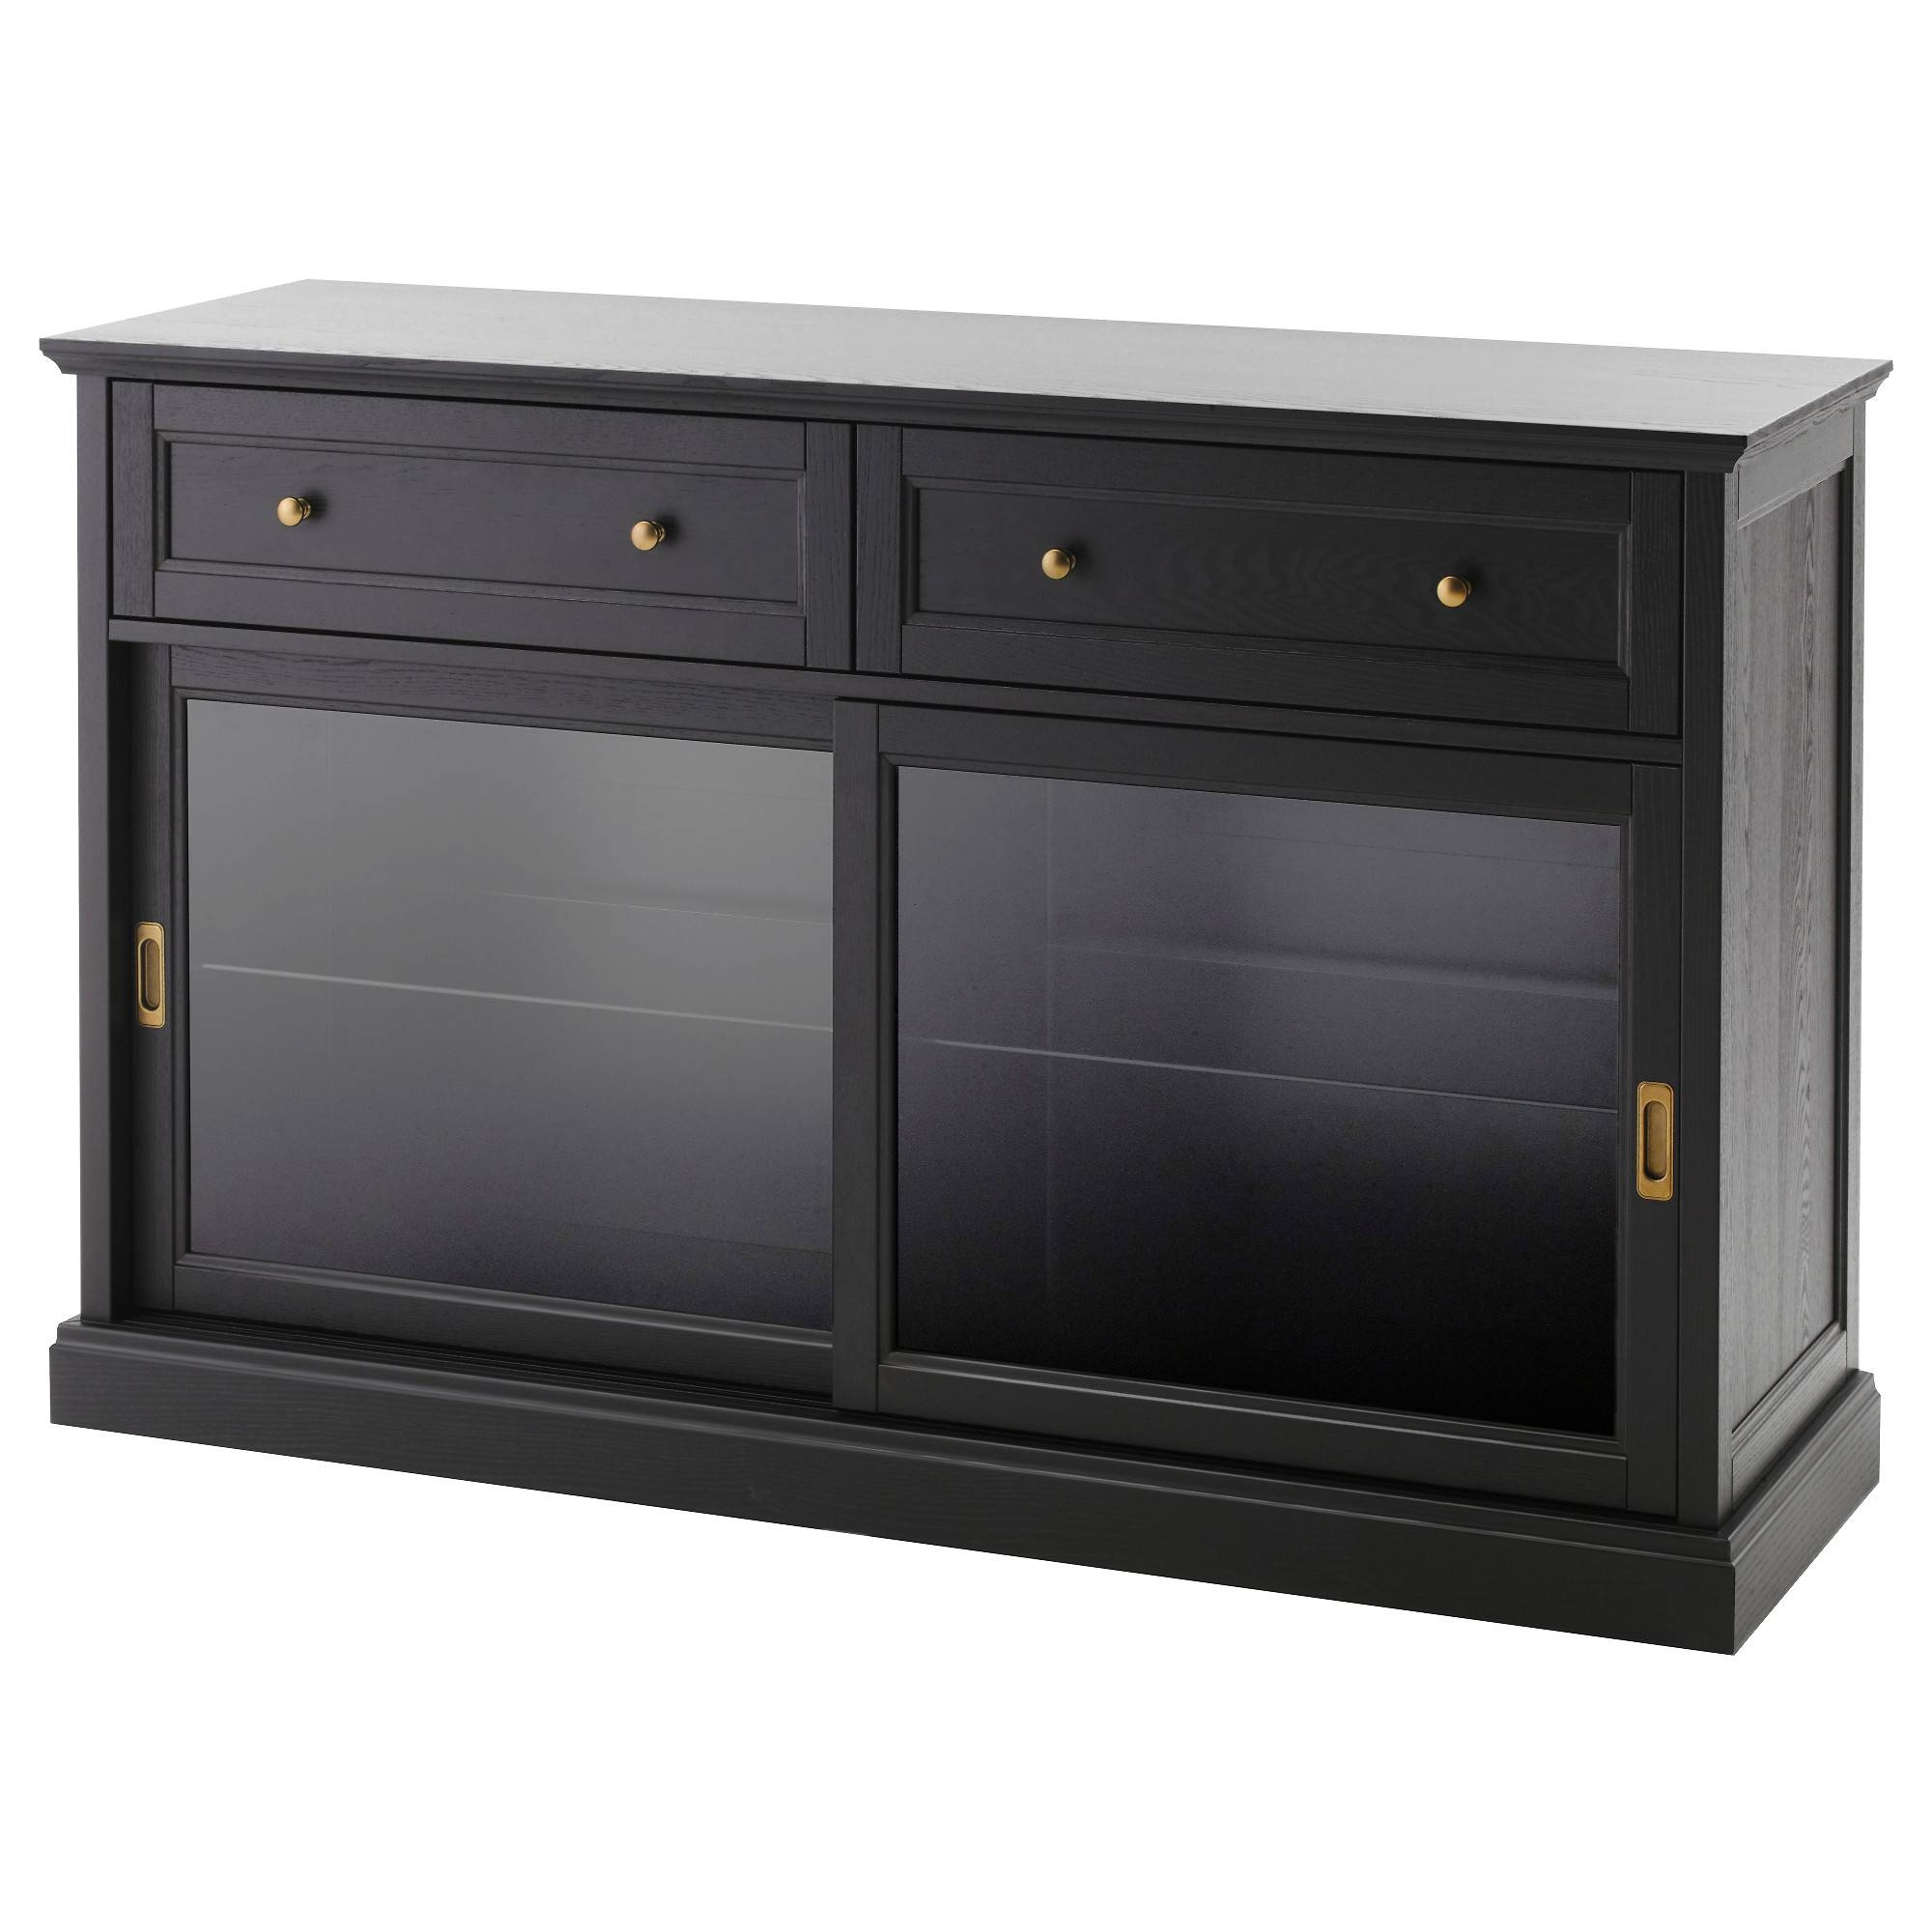 Buffet Tables & Sideboards – Ikea Intended For Black Gloss Buffet Sideboard (View 14 of 20)